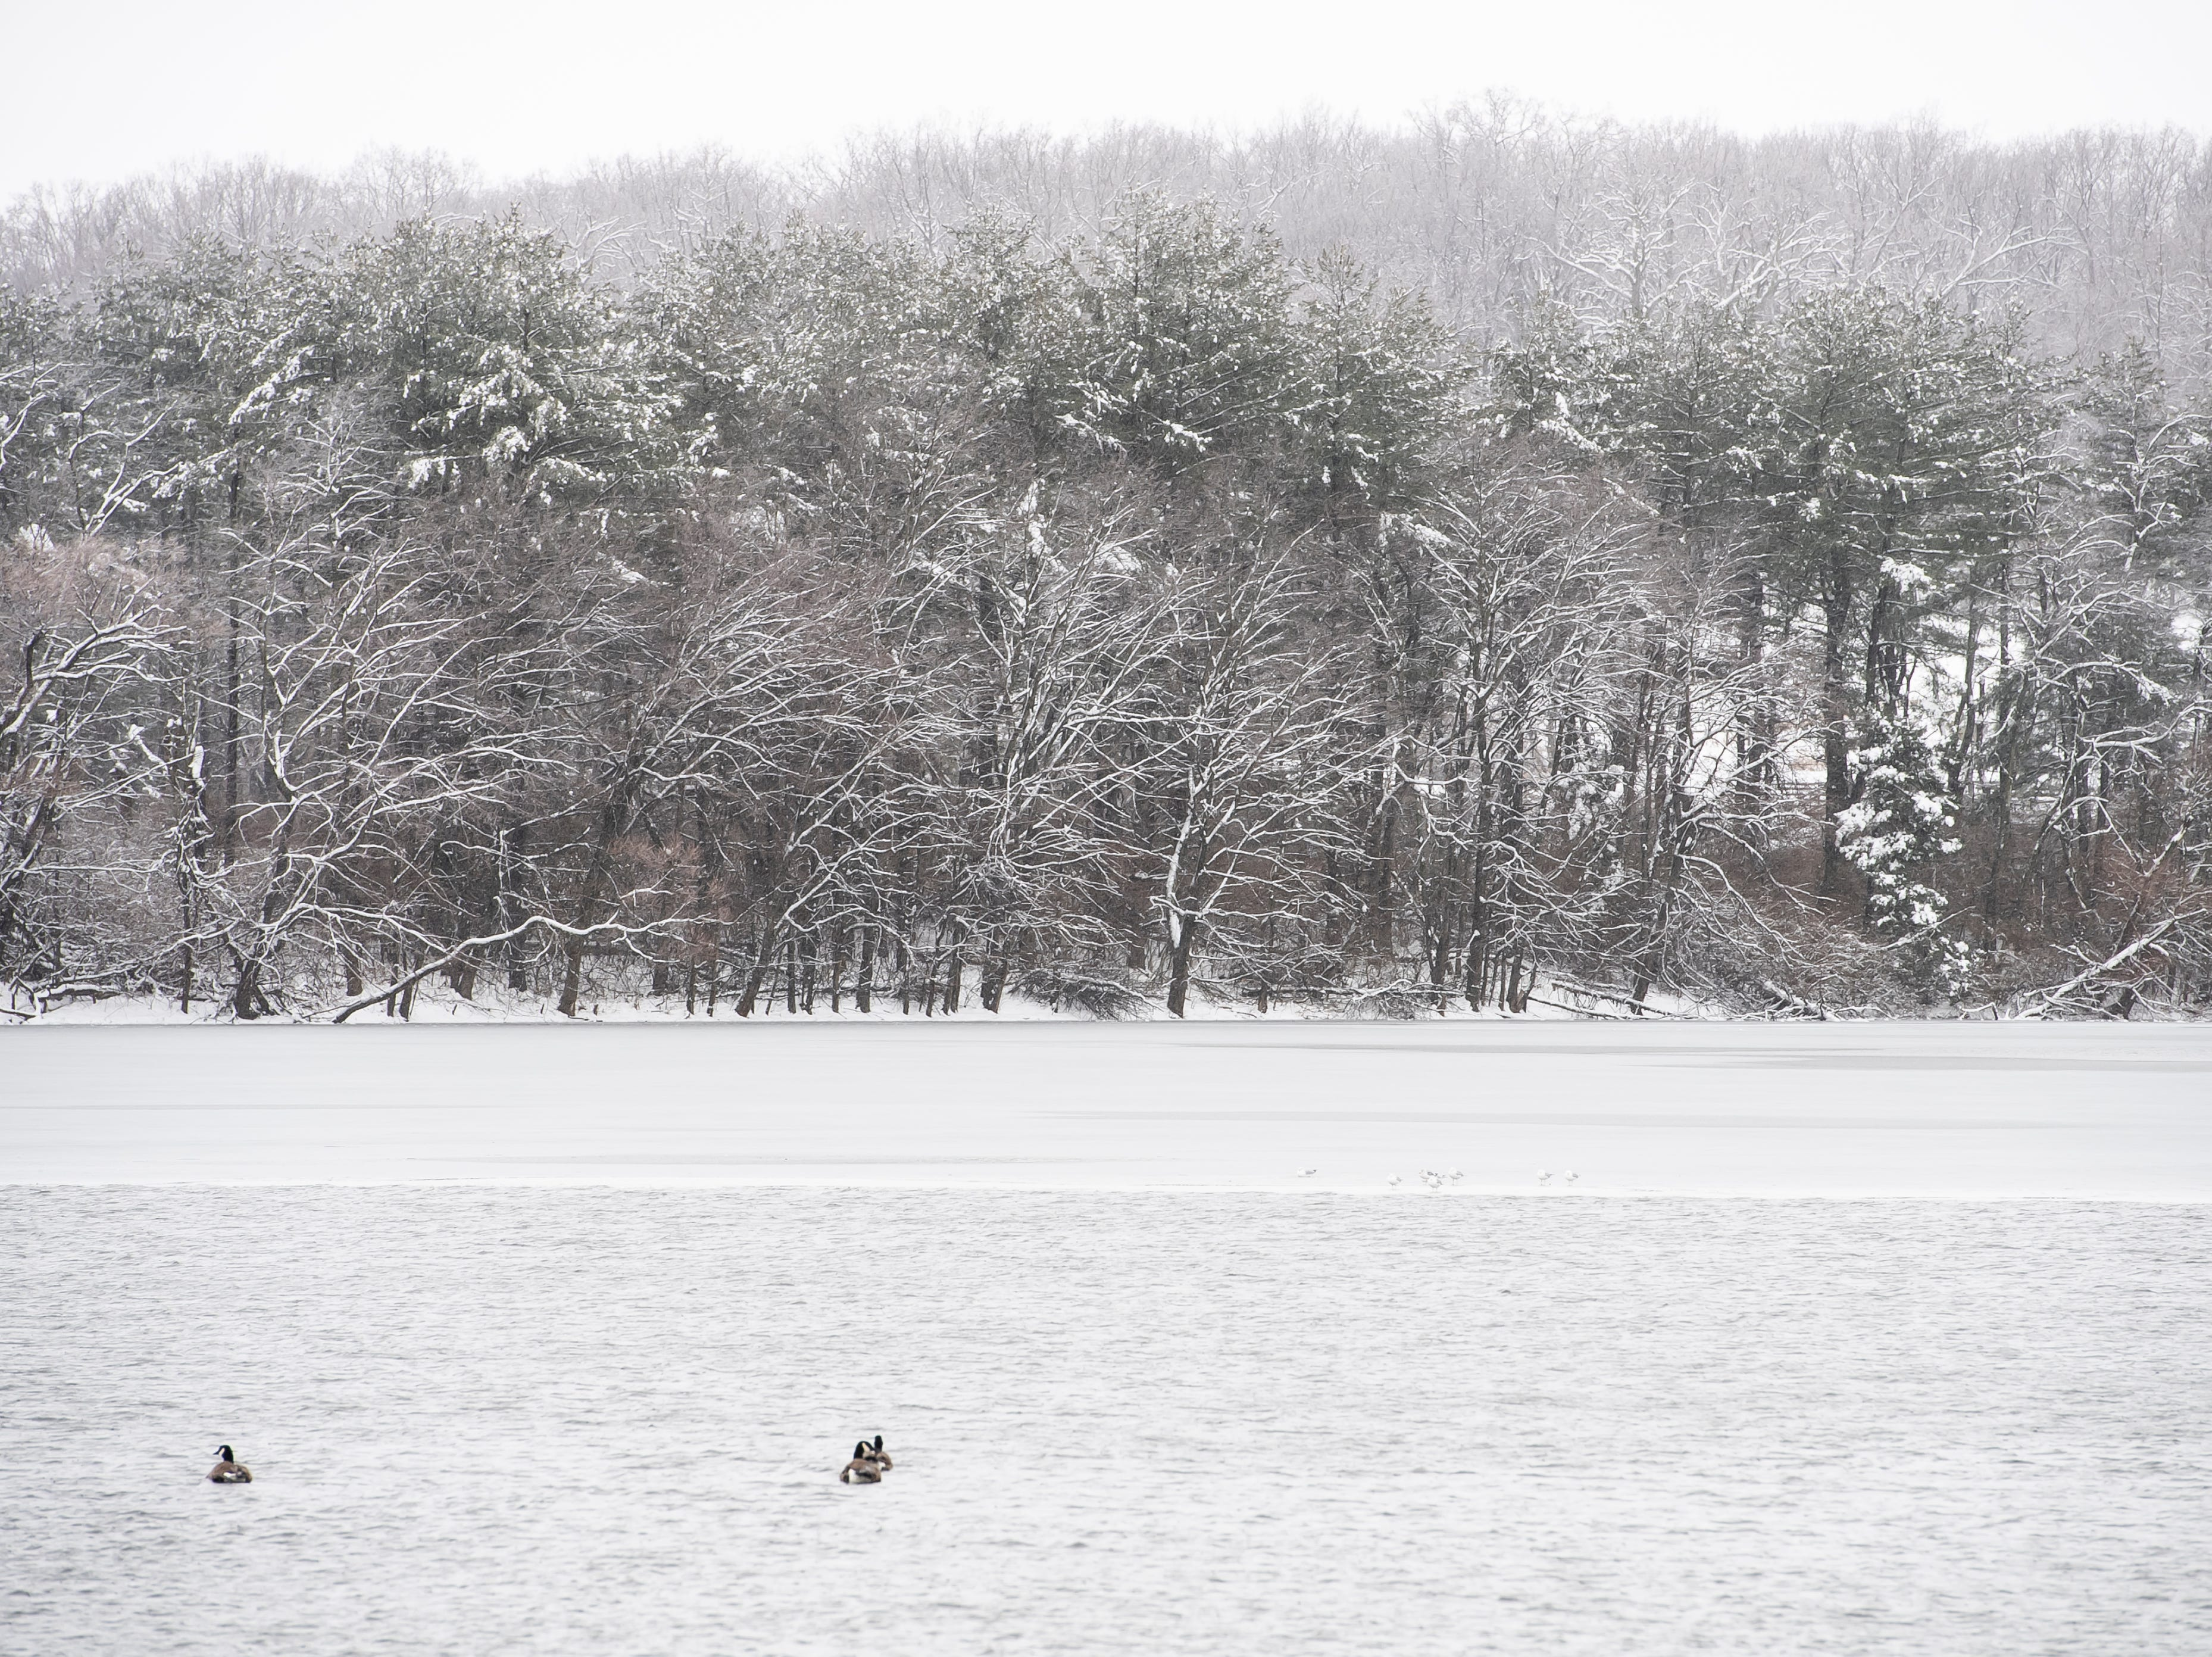 A thin layer of ice covers part of Longarm Dam Reservoir in West Manheim Township Tuesday, February 12, 2019.